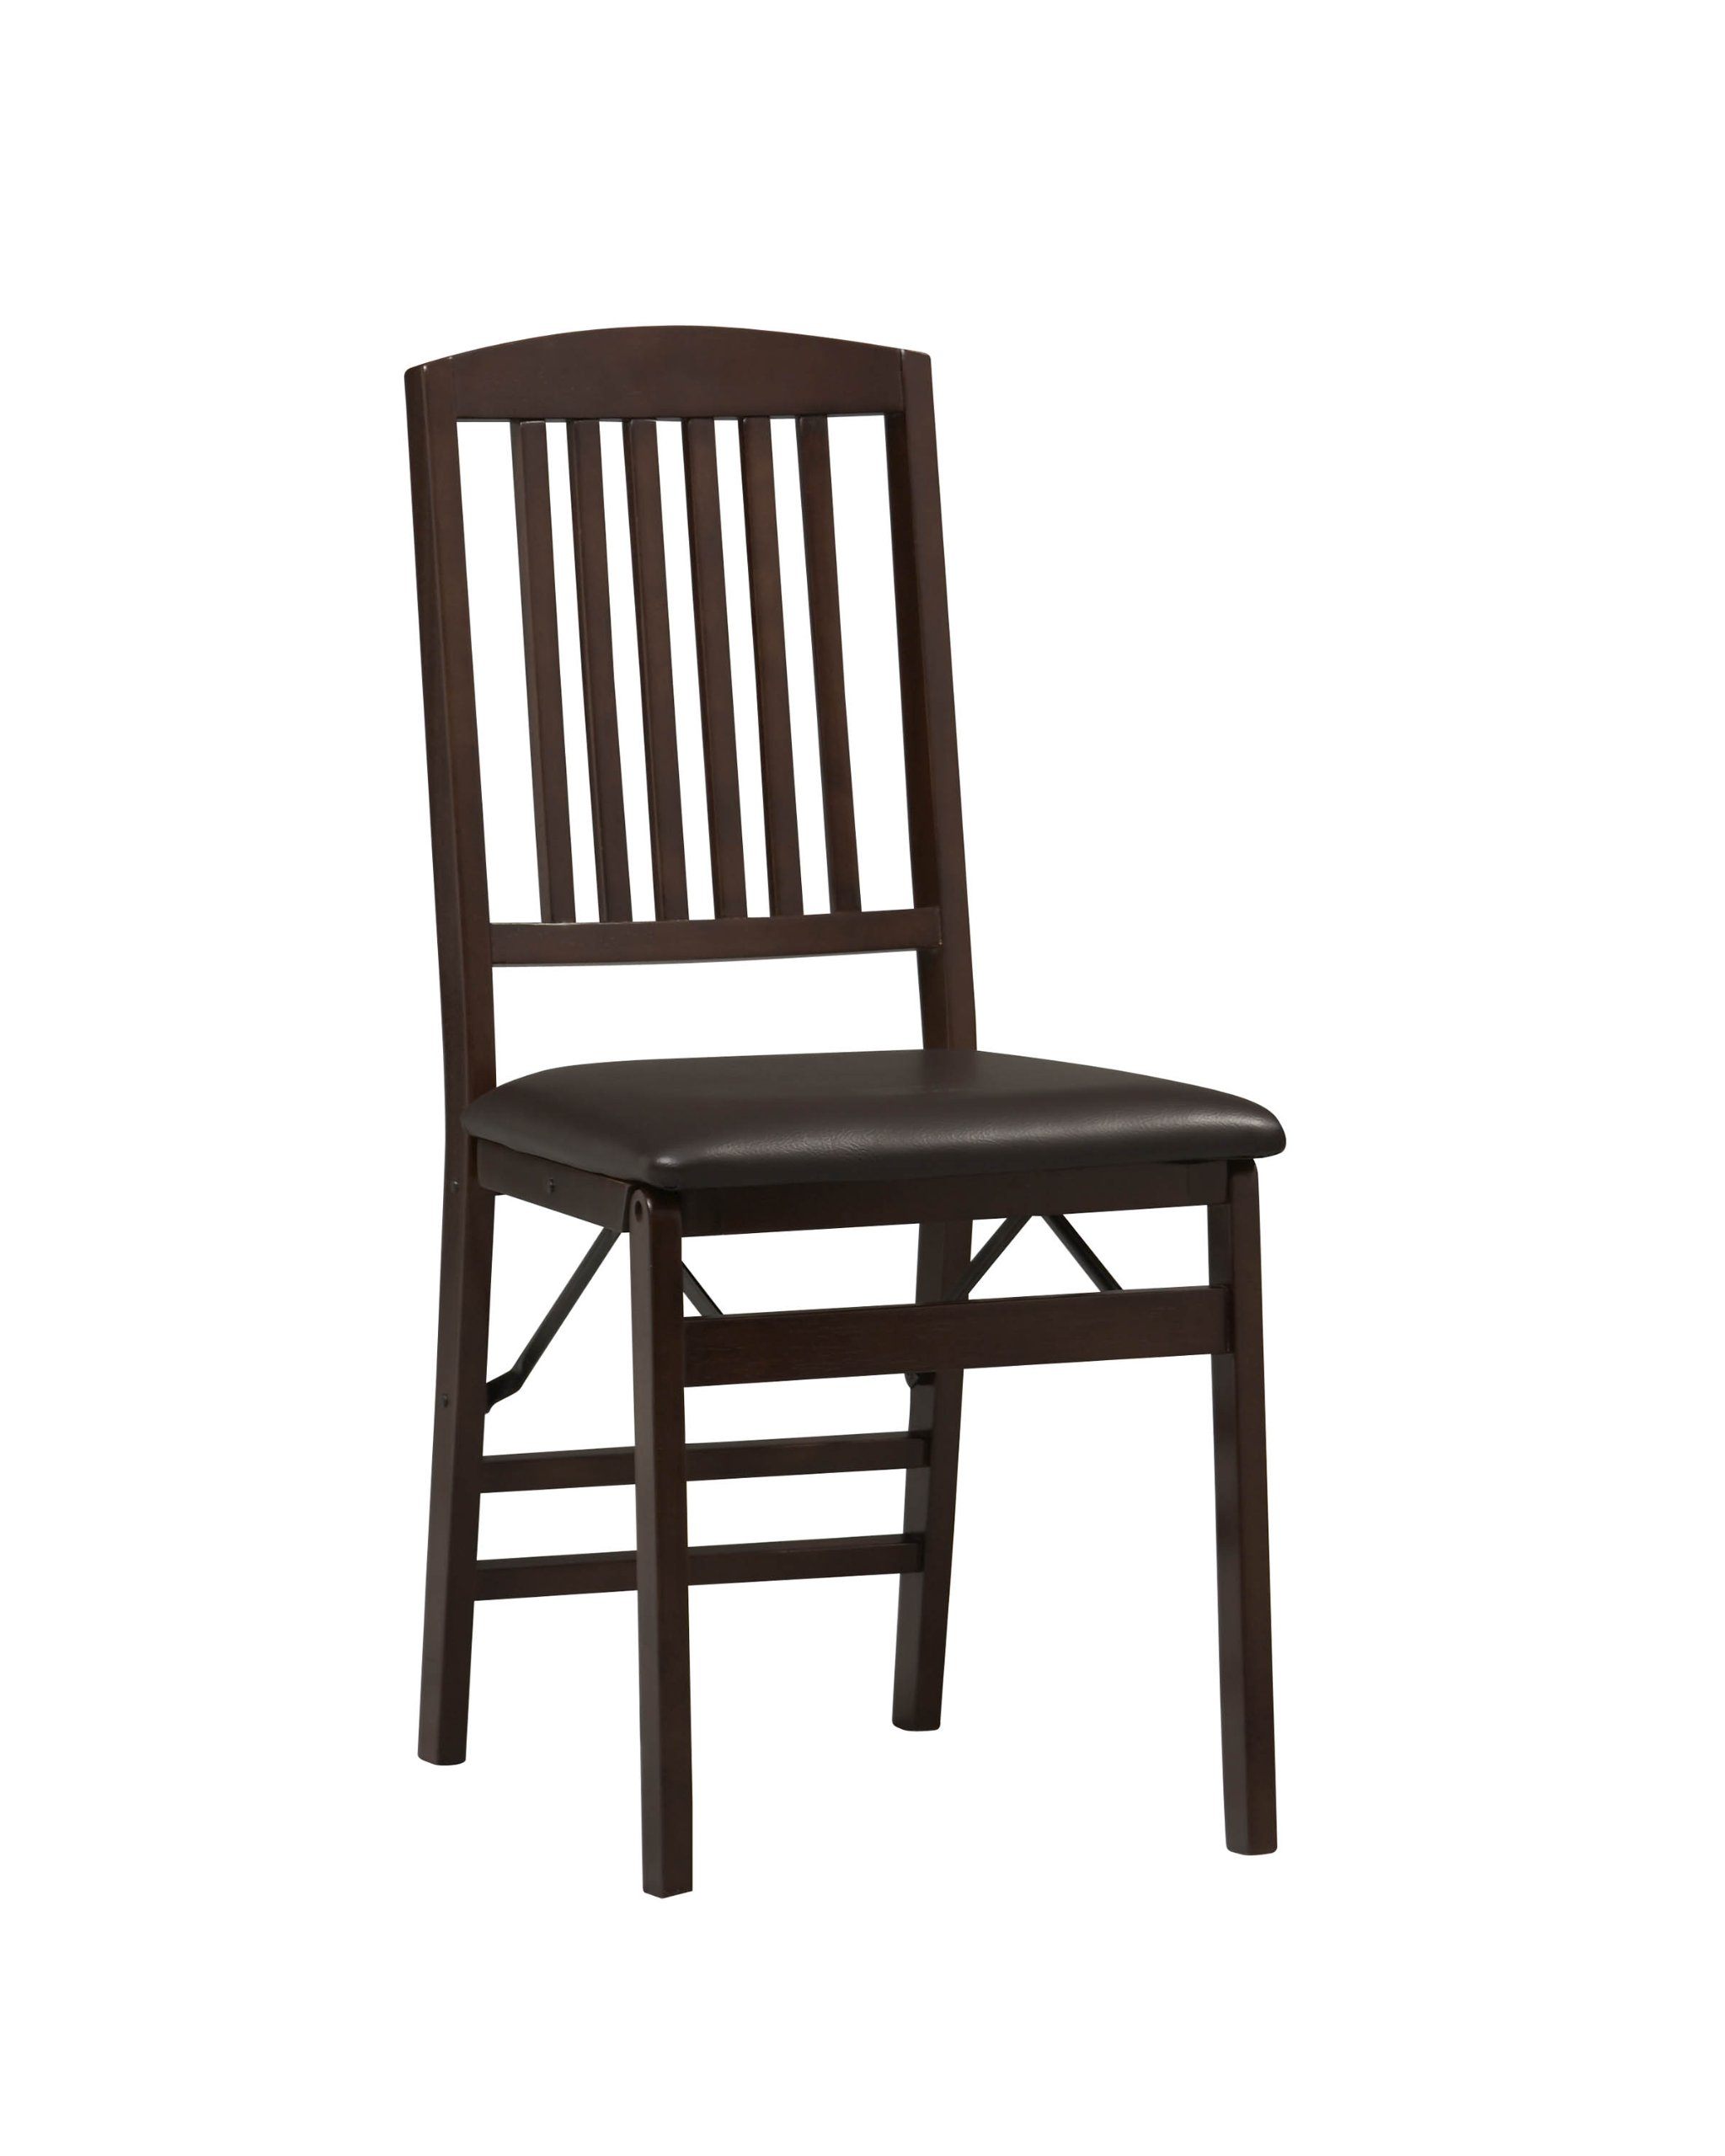 Linon Triena Mission Back Folding Chair Set of 2 by Linon